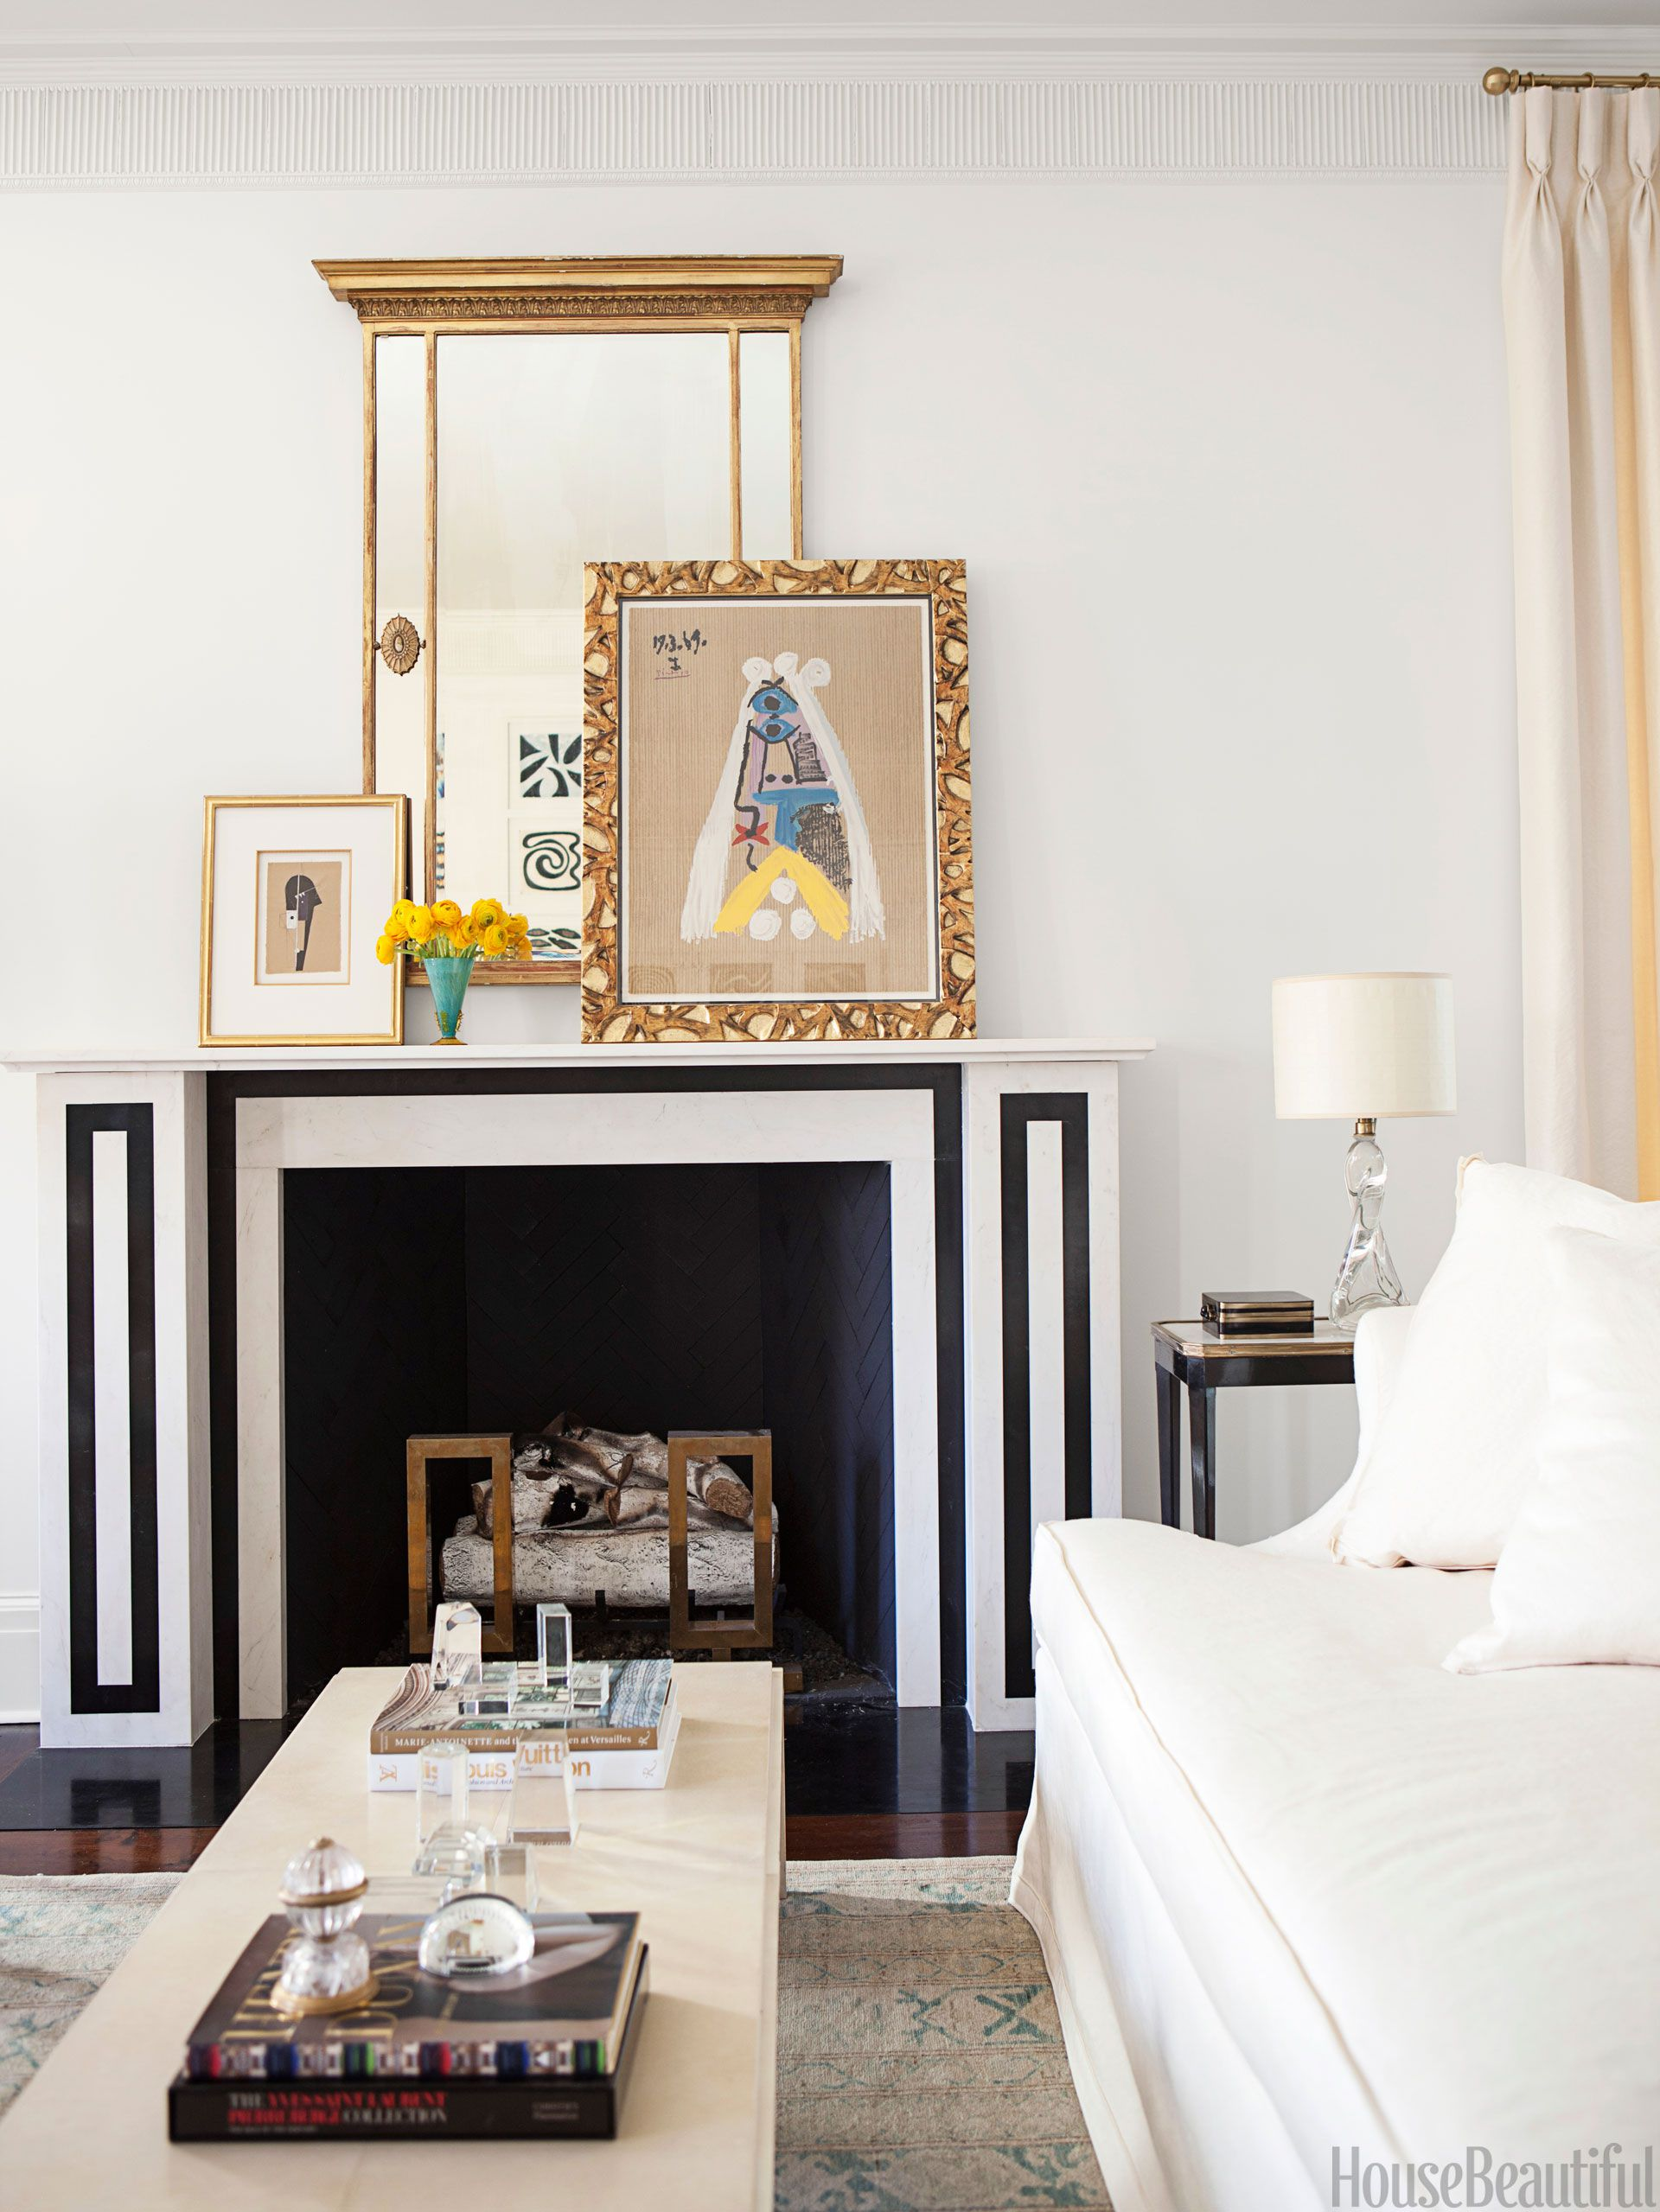 Home Decorating Styles - 6 New Trends to Explore